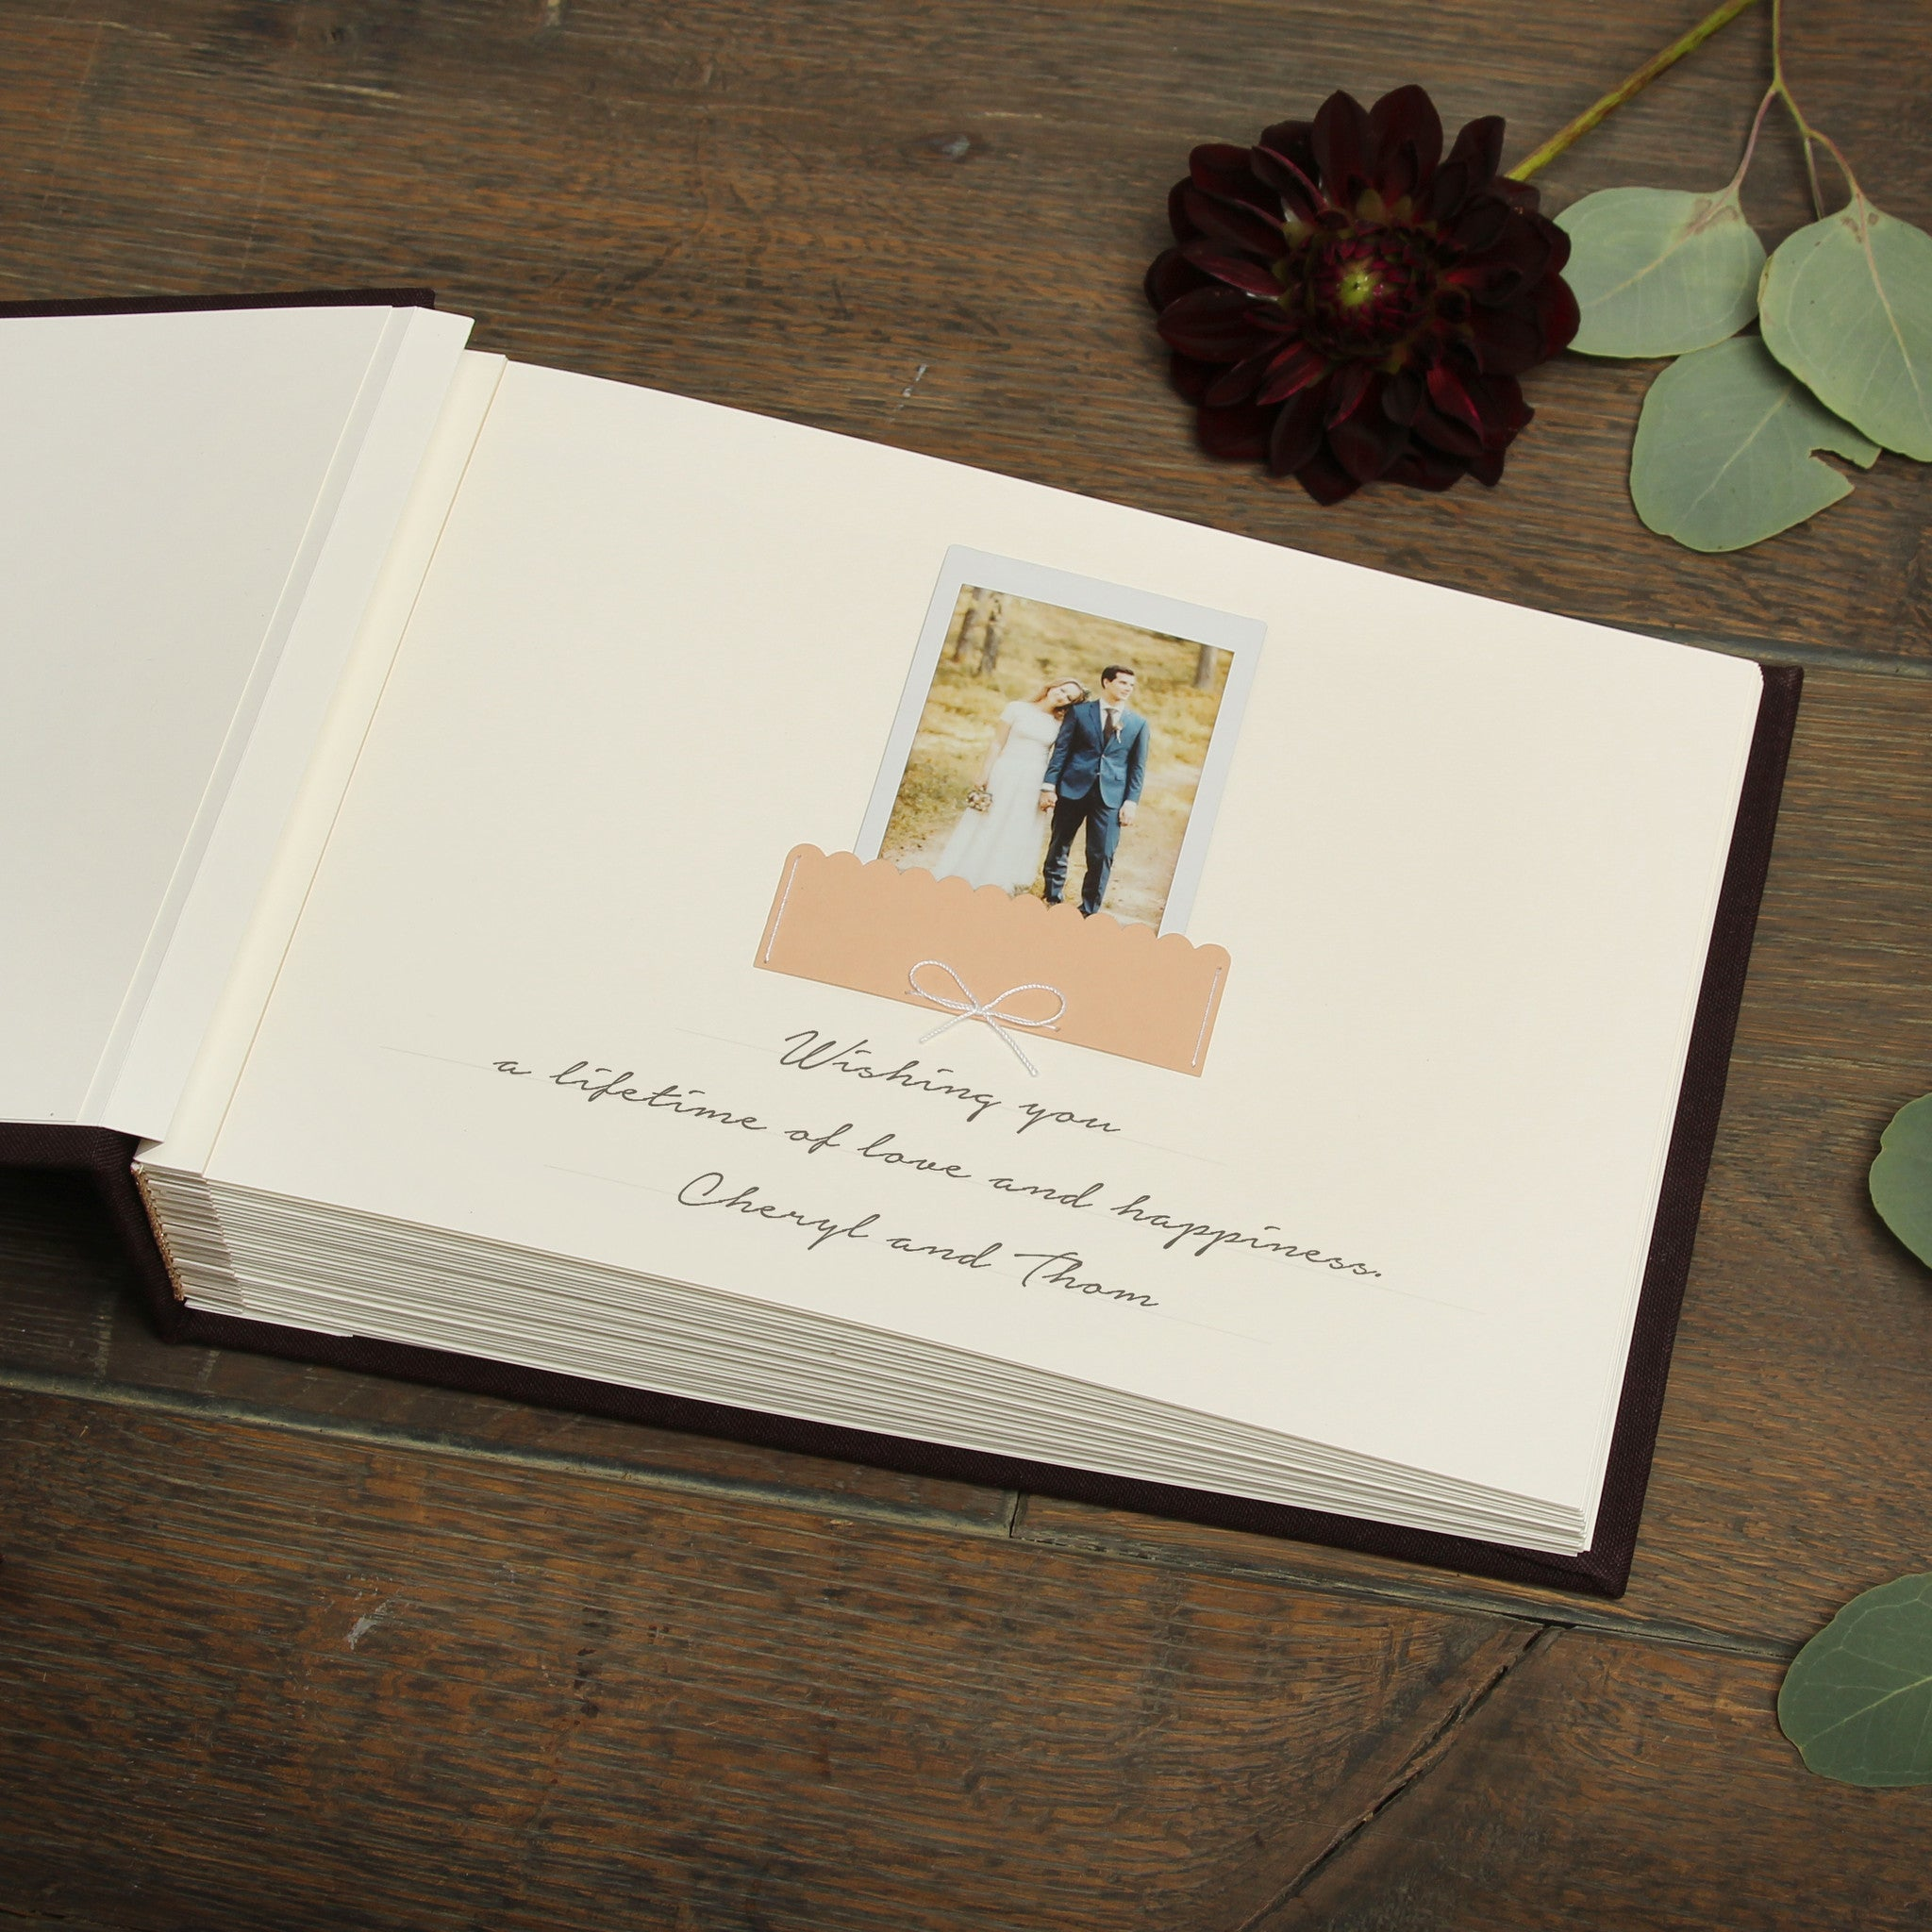 Chocolate Instant Wedding Guest Book Album with White Lettering by Liumy - Liumy